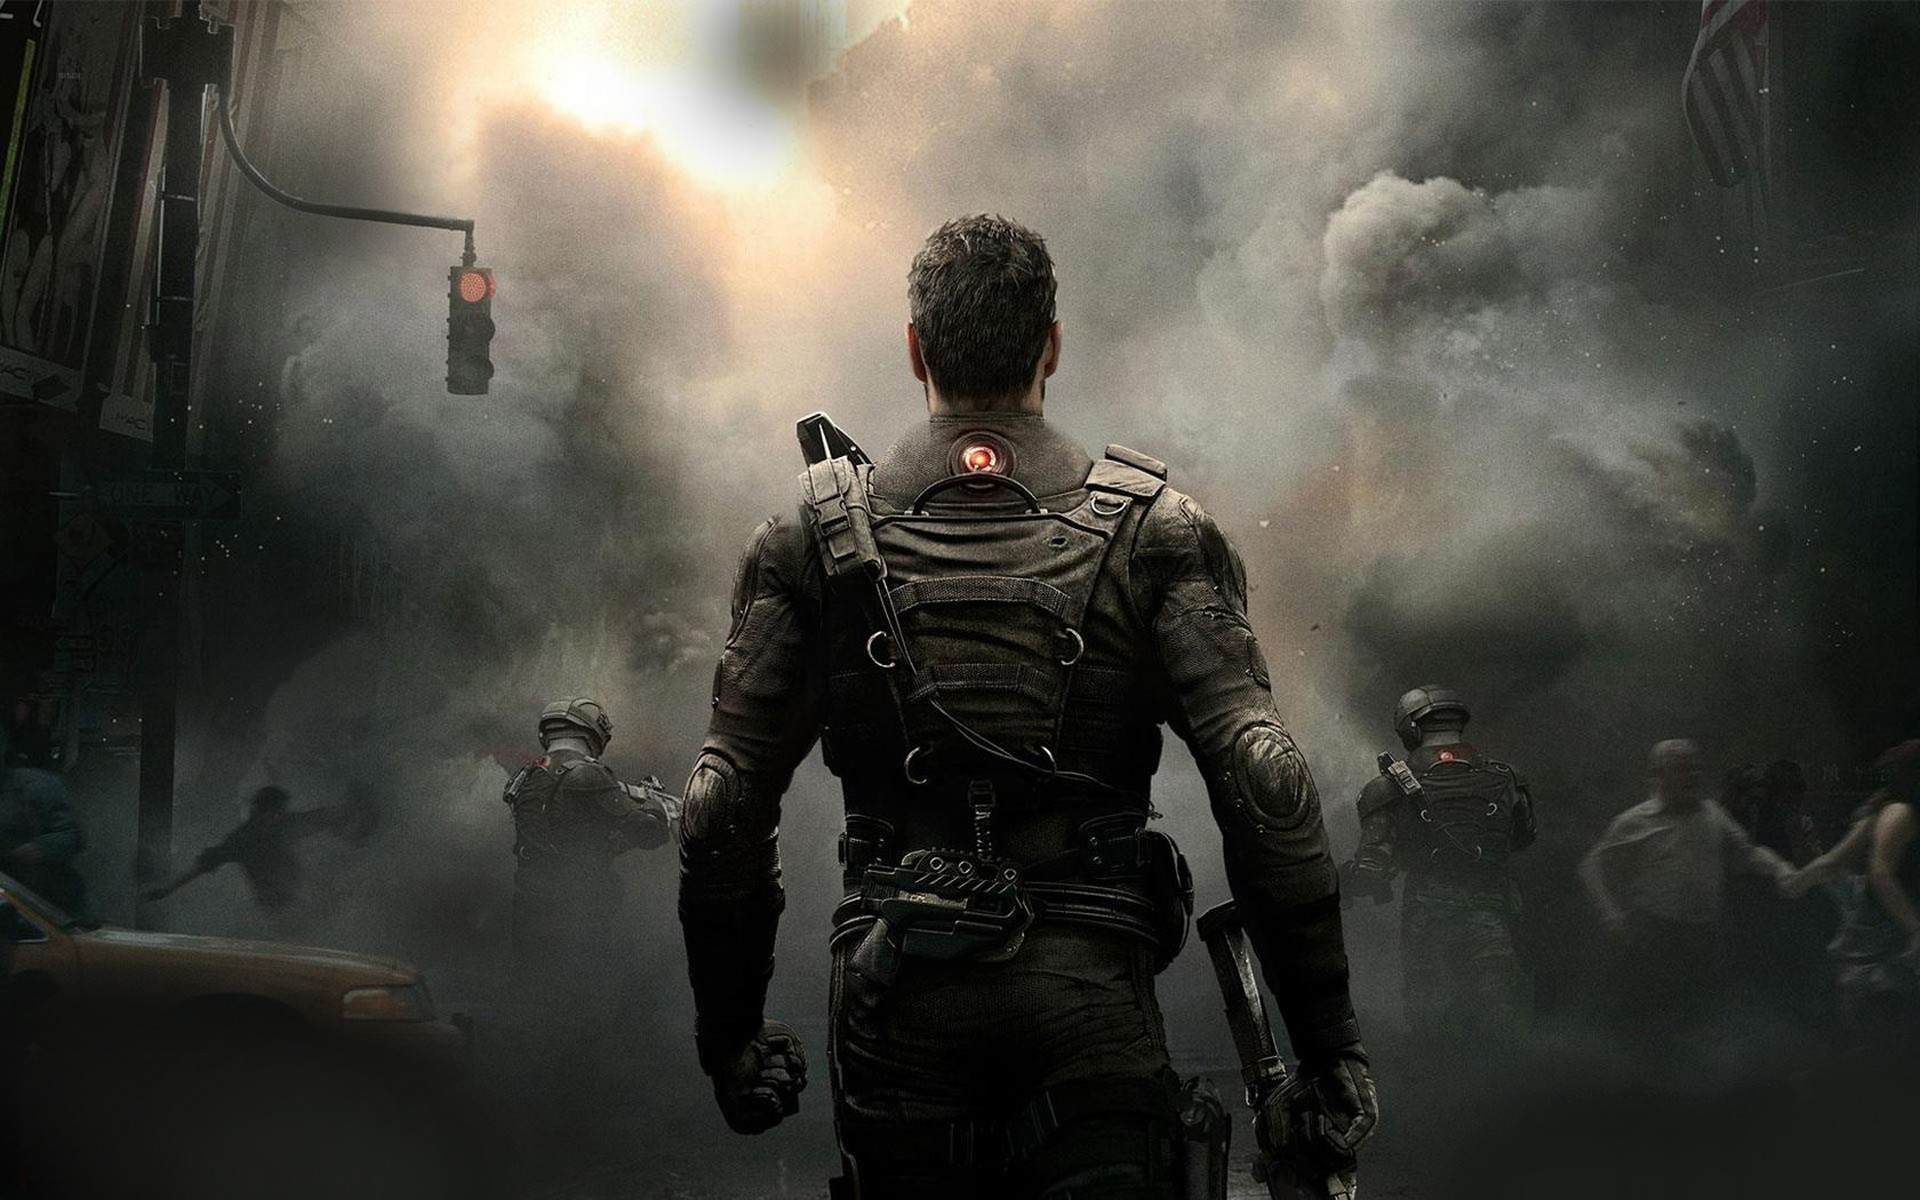 War Wallpapers - Gameplayergroup - Epic Game Background , HD Wallpaper & Backgrounds